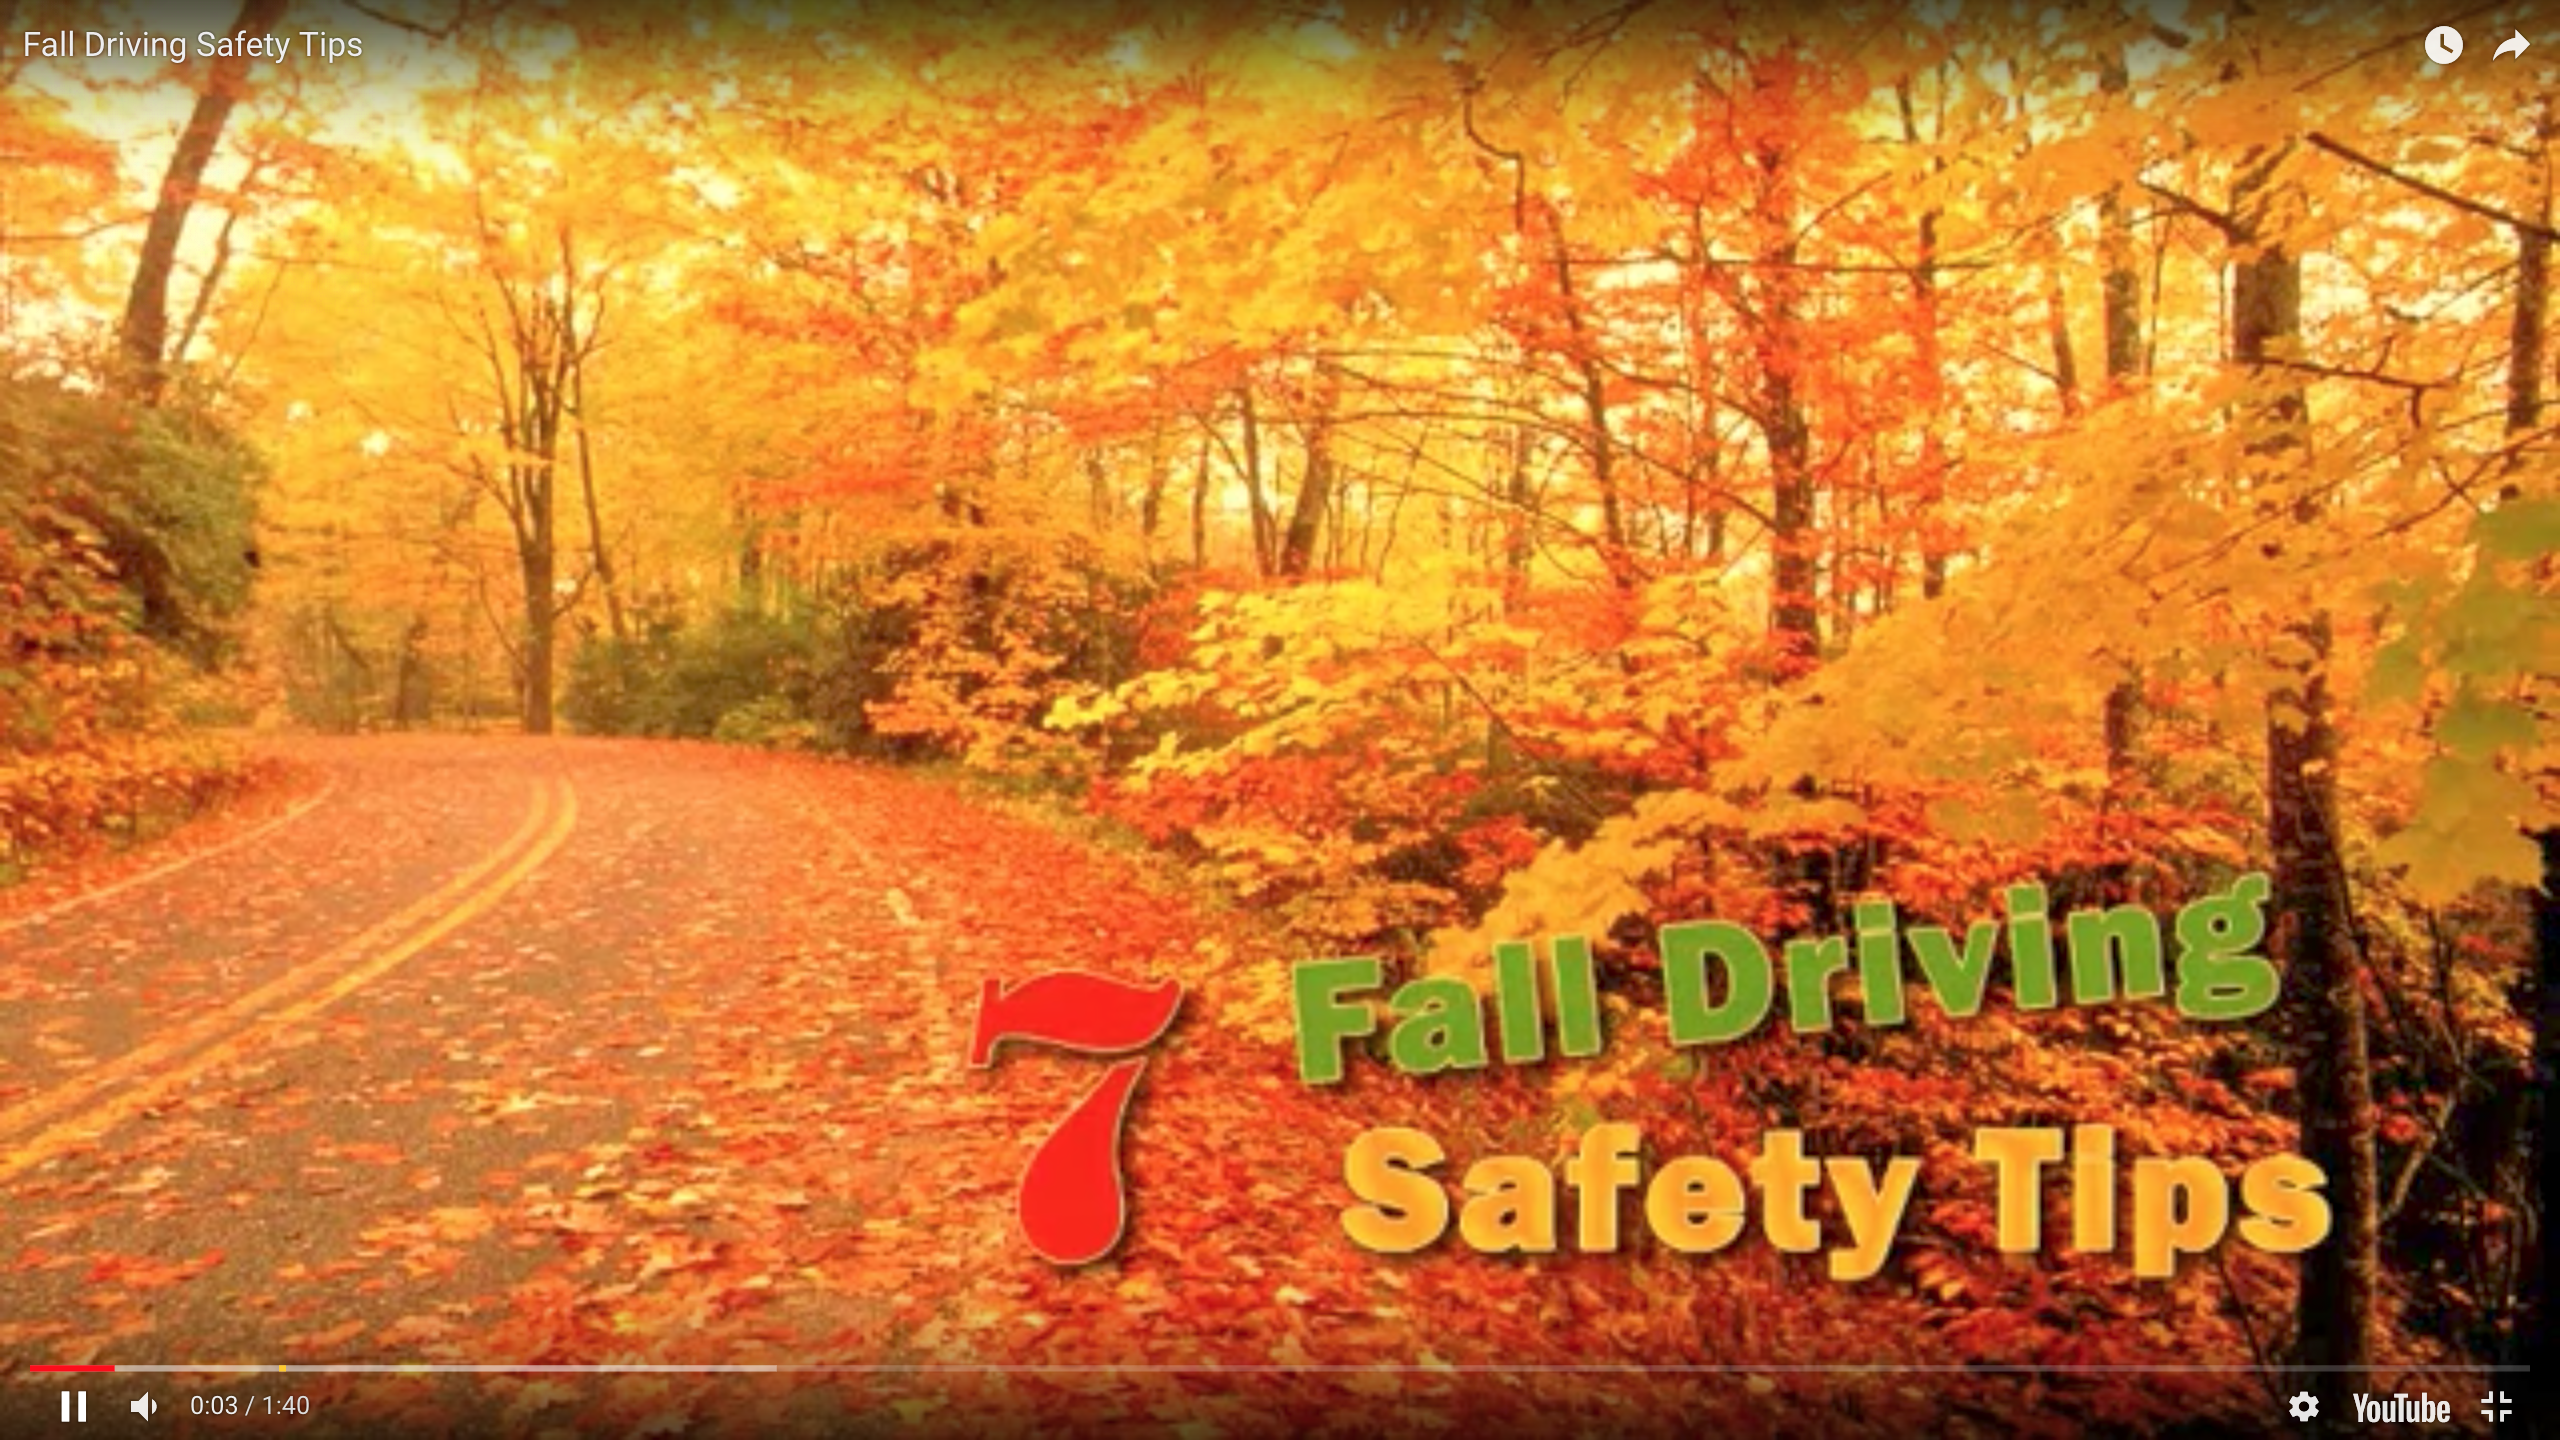 7 Fall Driving Safety Tips